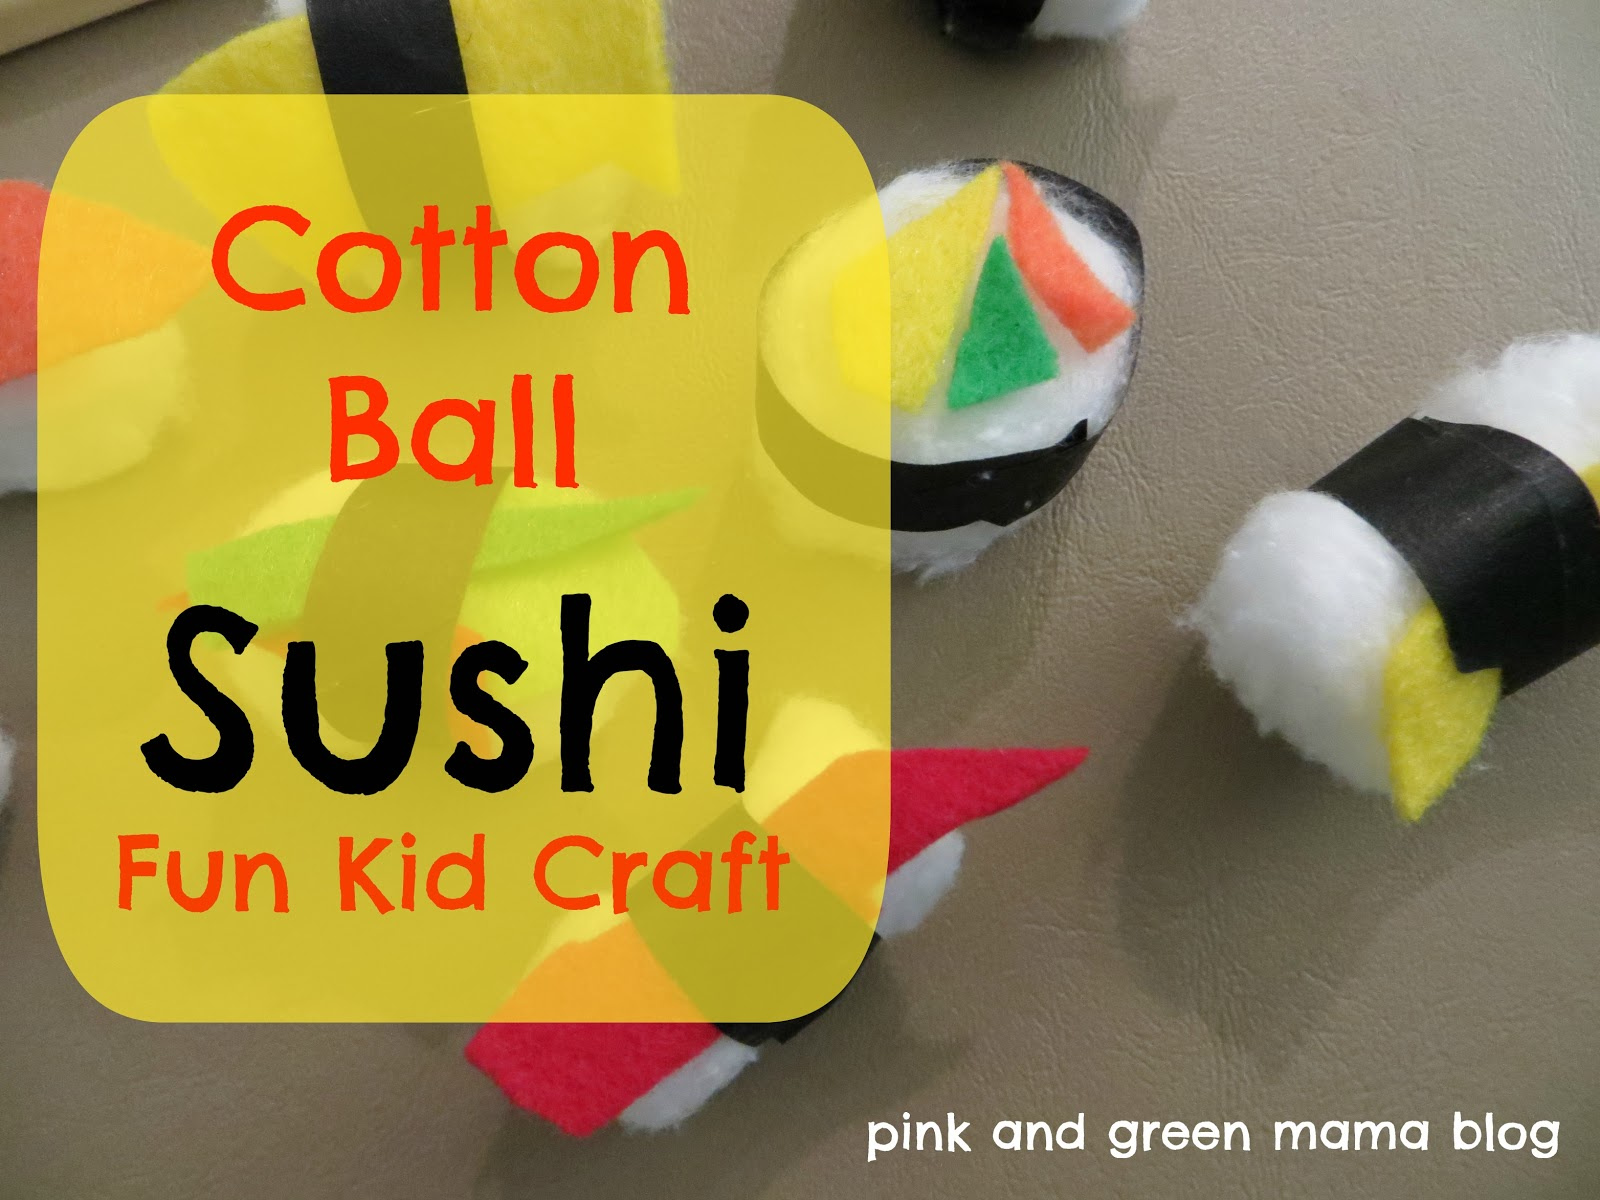 Pink And Green Mama Favorite Felt Projects Crafts And Felt Board Ideas For Kids